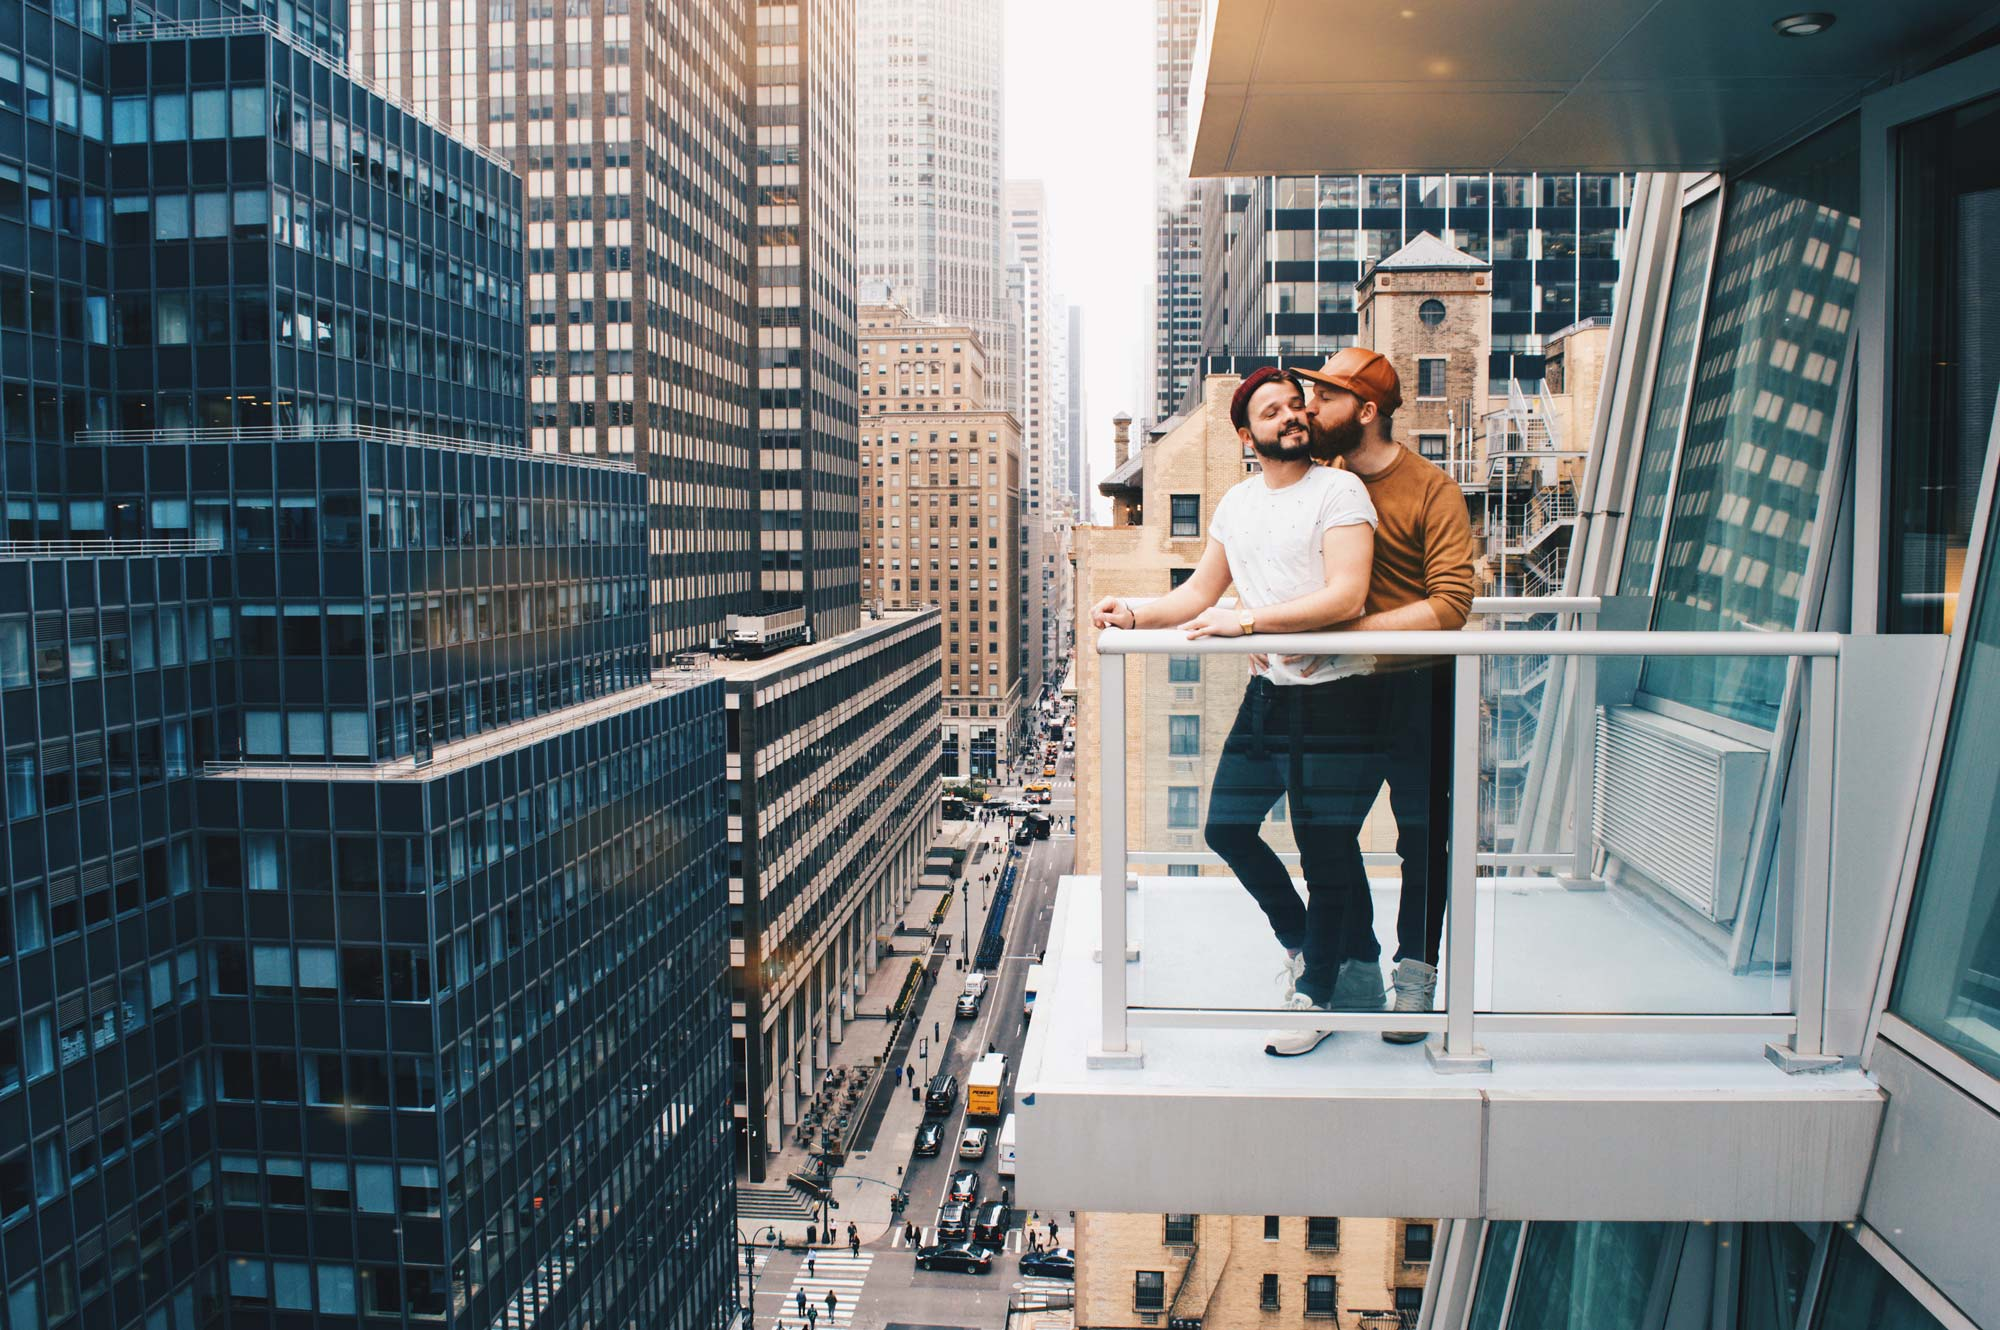 A gay kiss in Manhattan New York City for World Pride 2019 © Coupleofmen.com